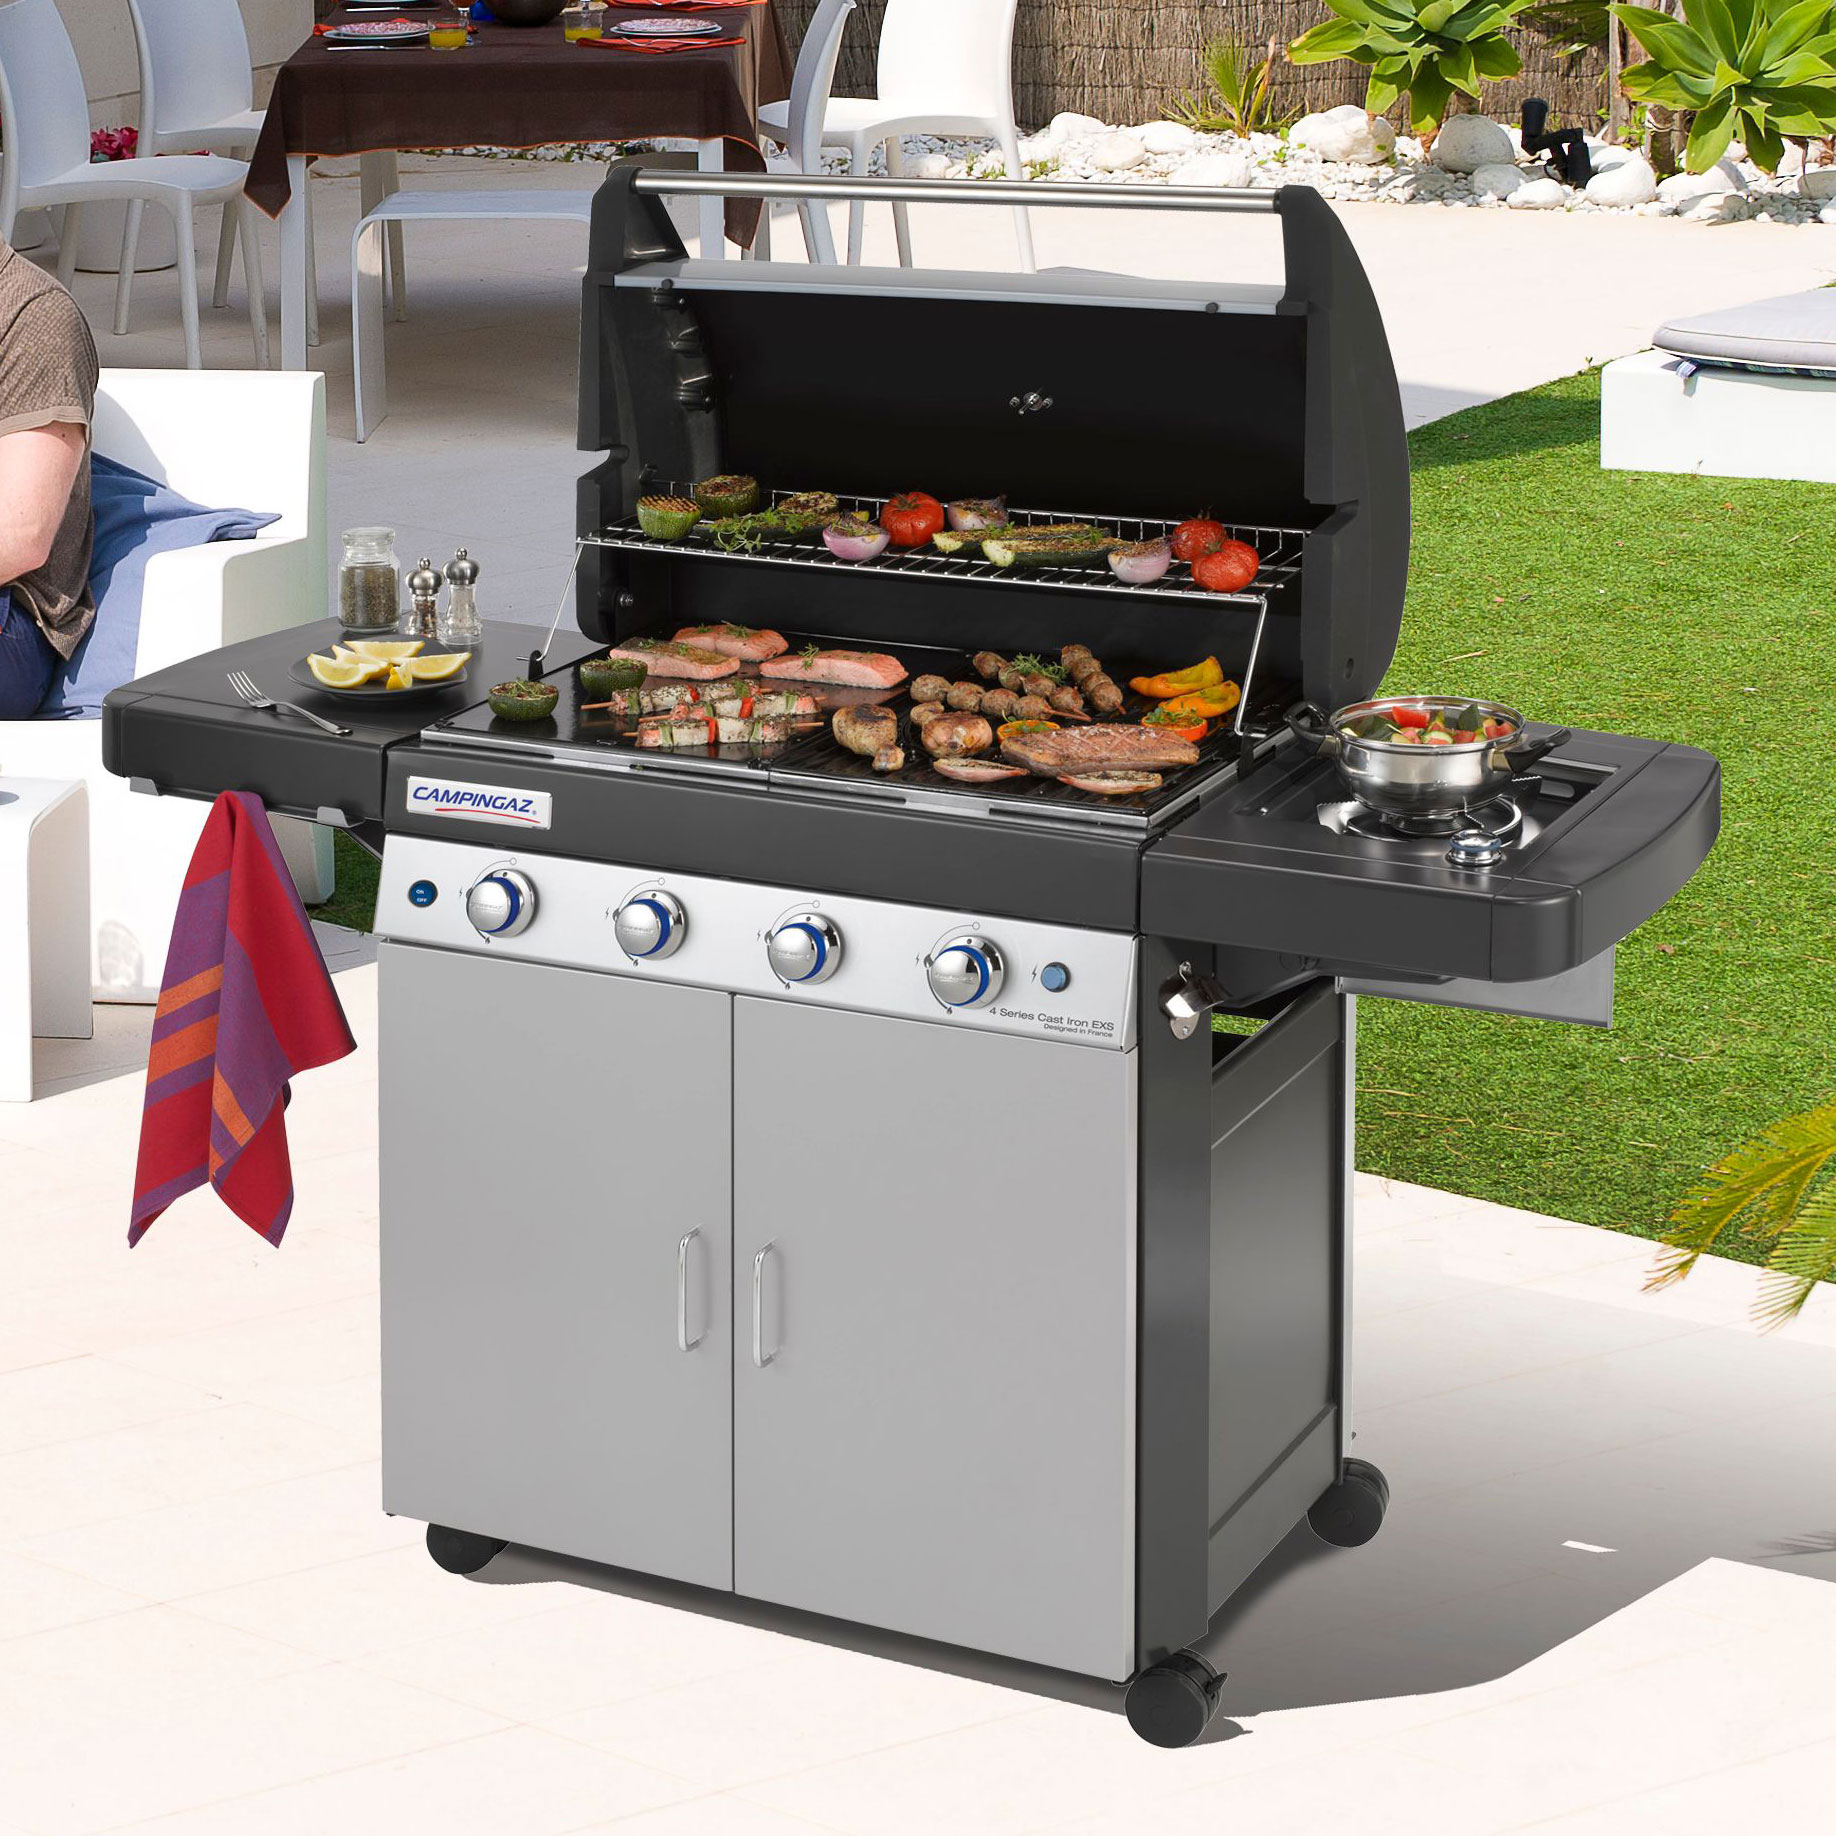 campingaz 4 series classic lxs barbecue gaz sur chariot 4 br leurs comparer avec. Black Bedroom Furniture Sets. Home Design Ideas